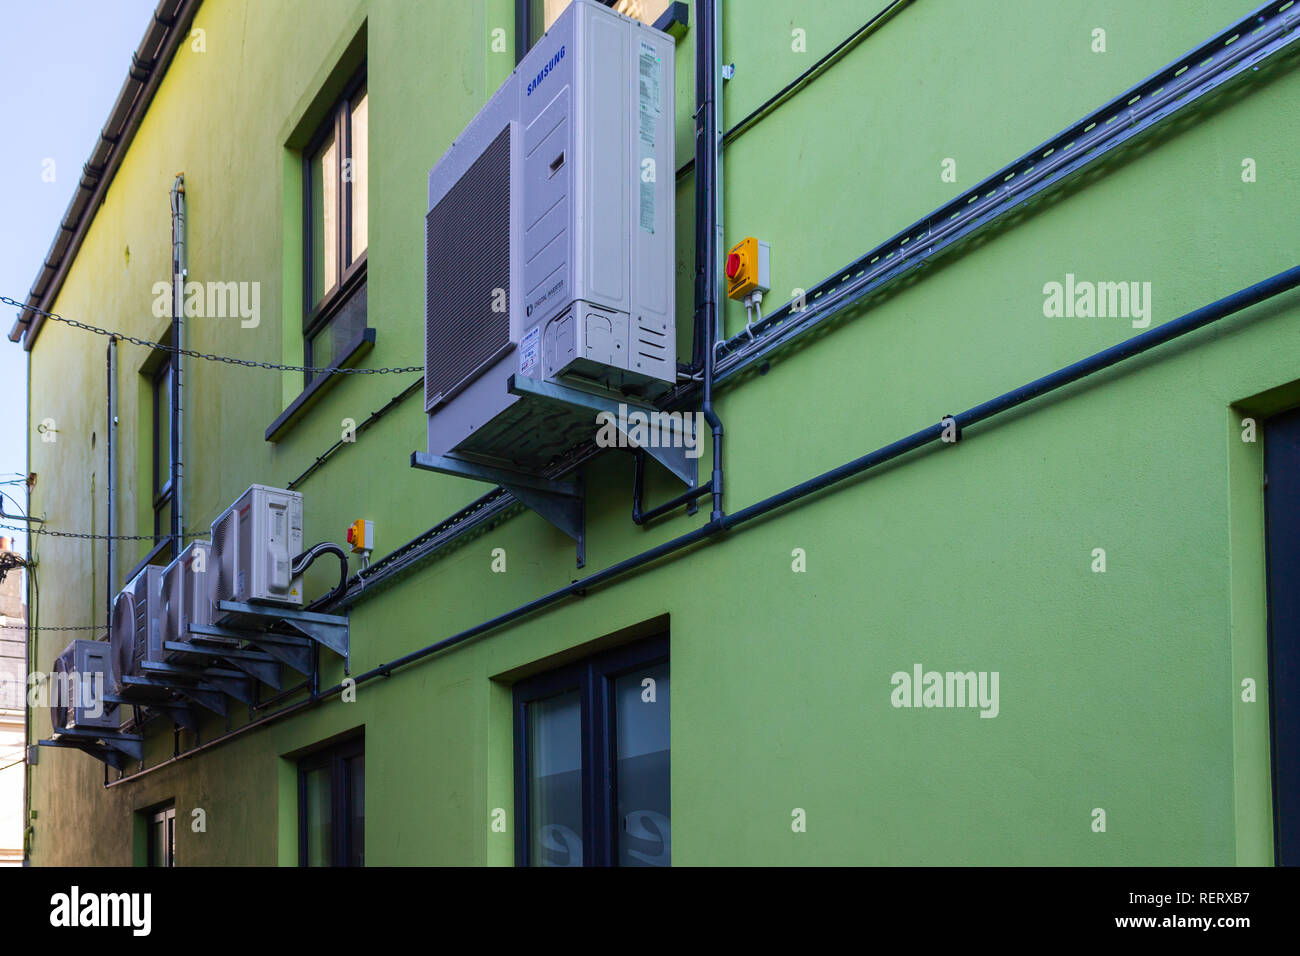 Samsung digital inverter mounted on a wall - Stock Image